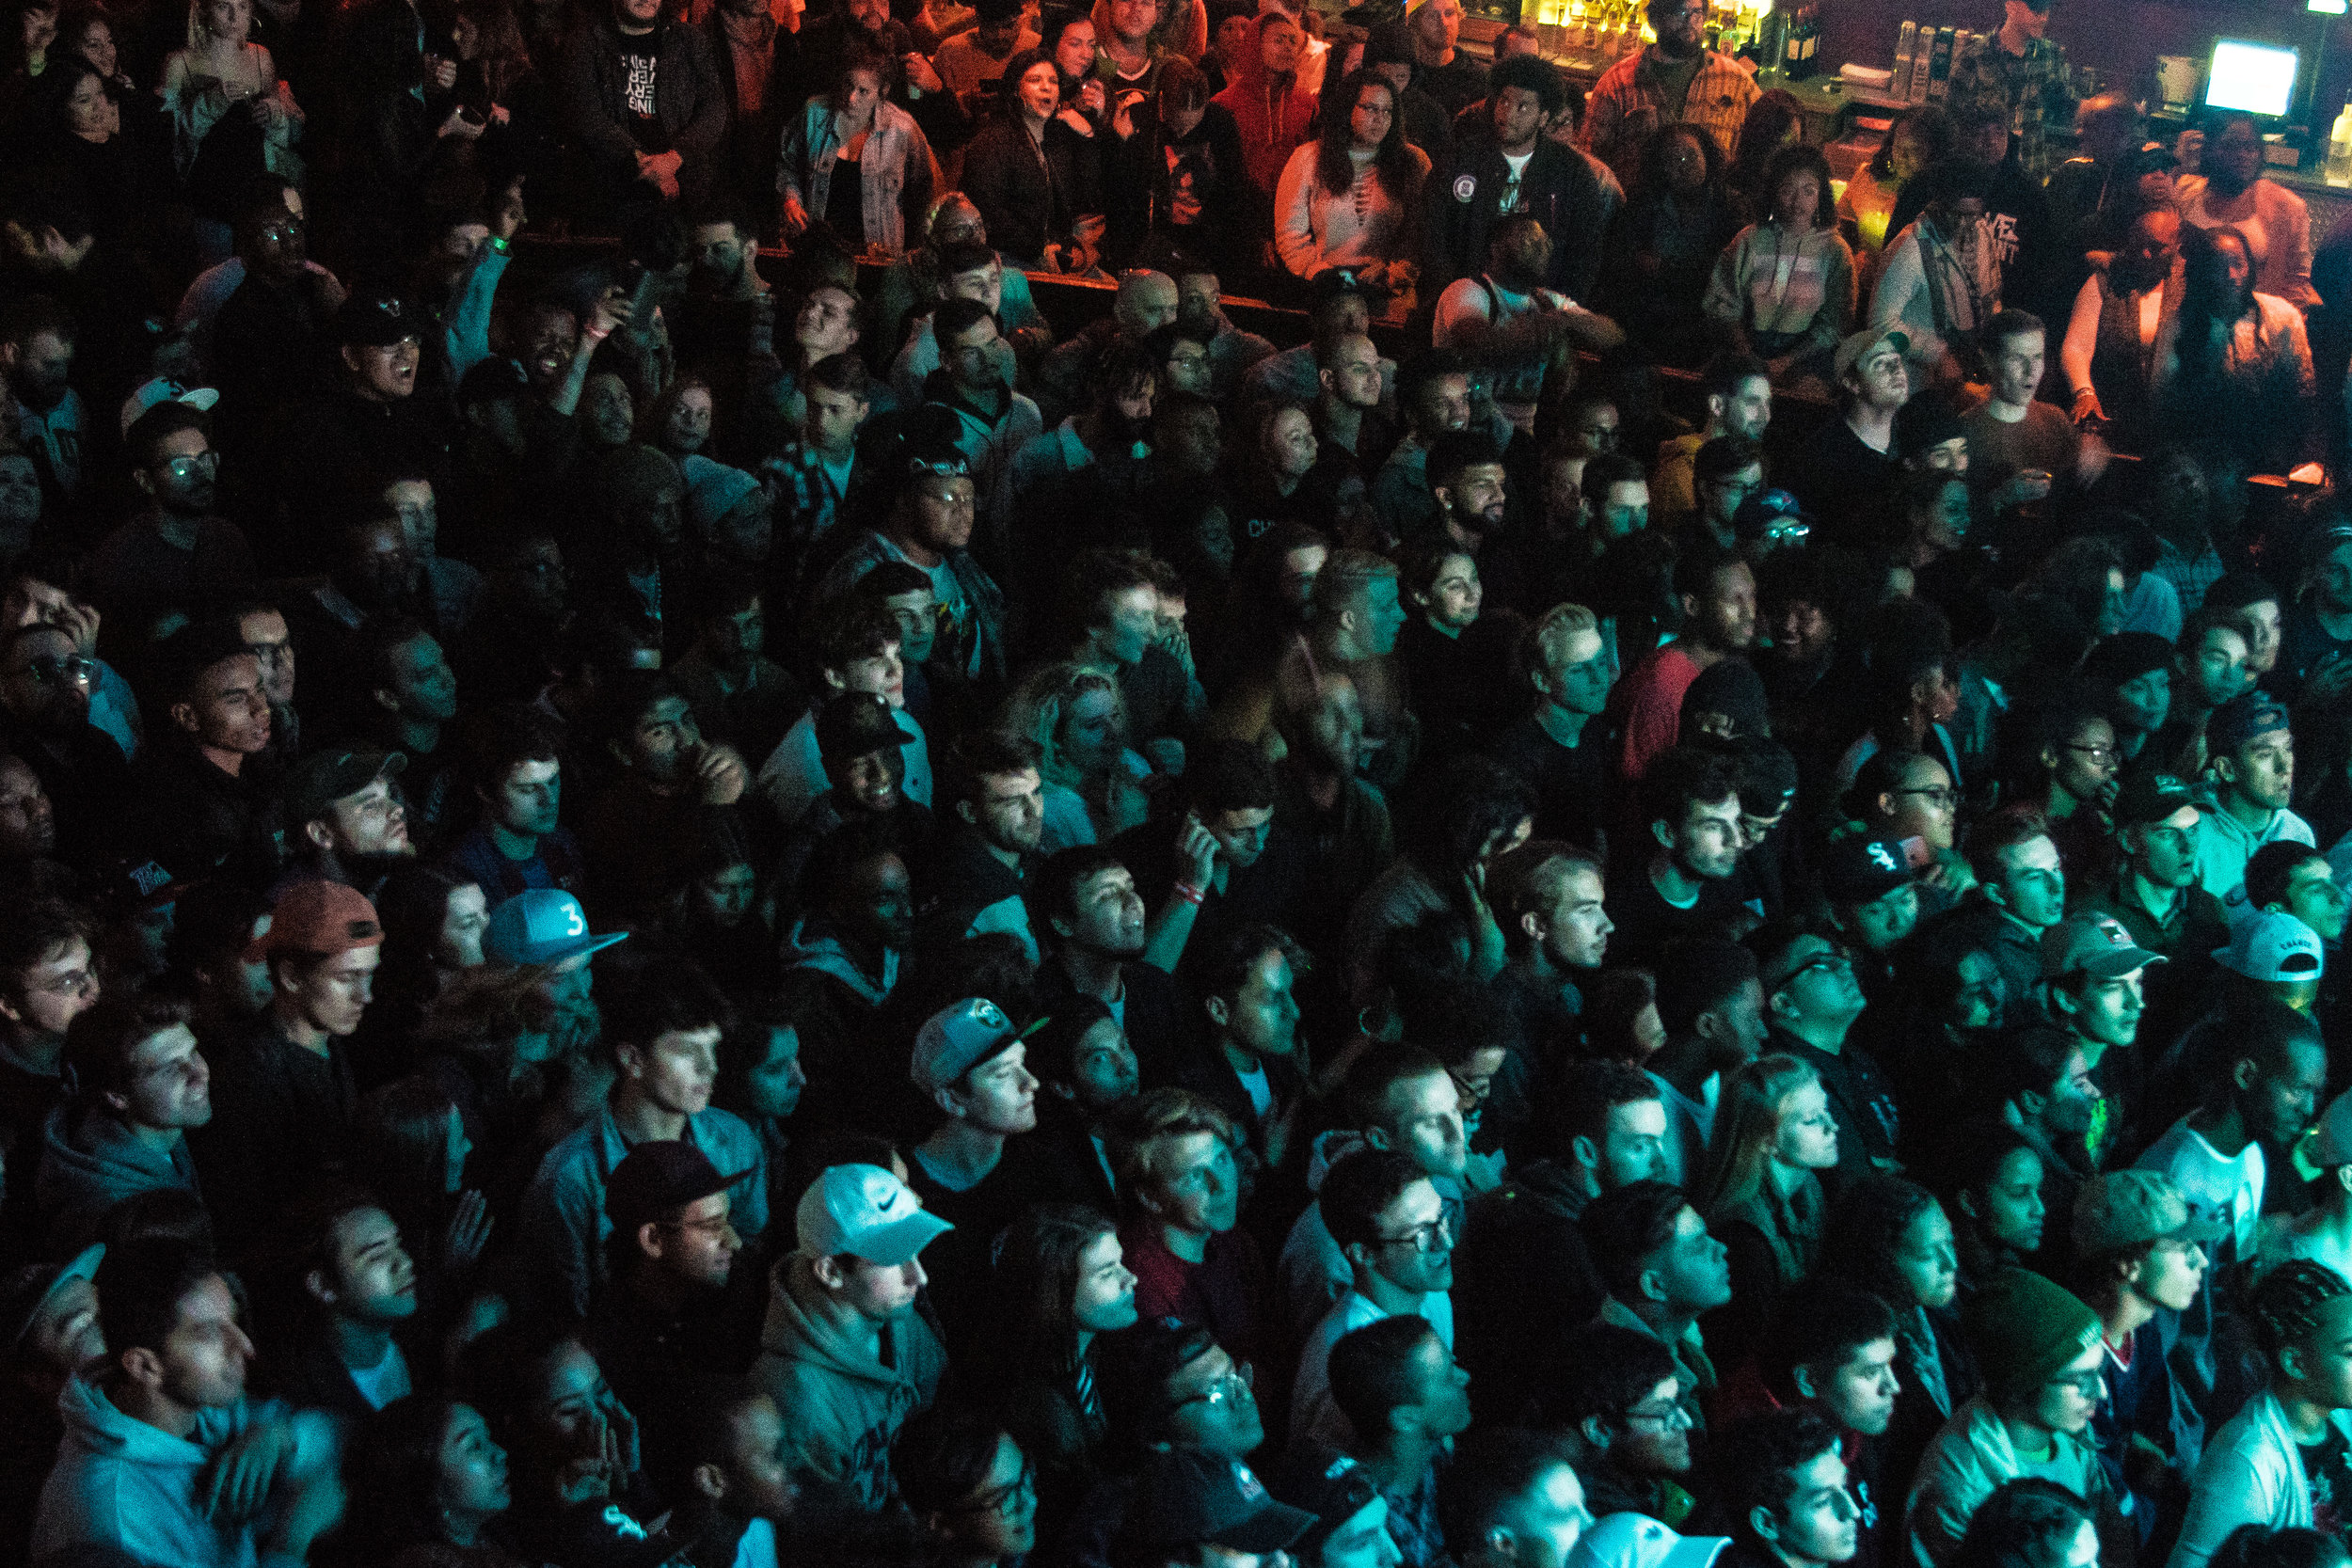 A sold out crowd at the House of Blues - Chicago. Photo by: Tom Vin